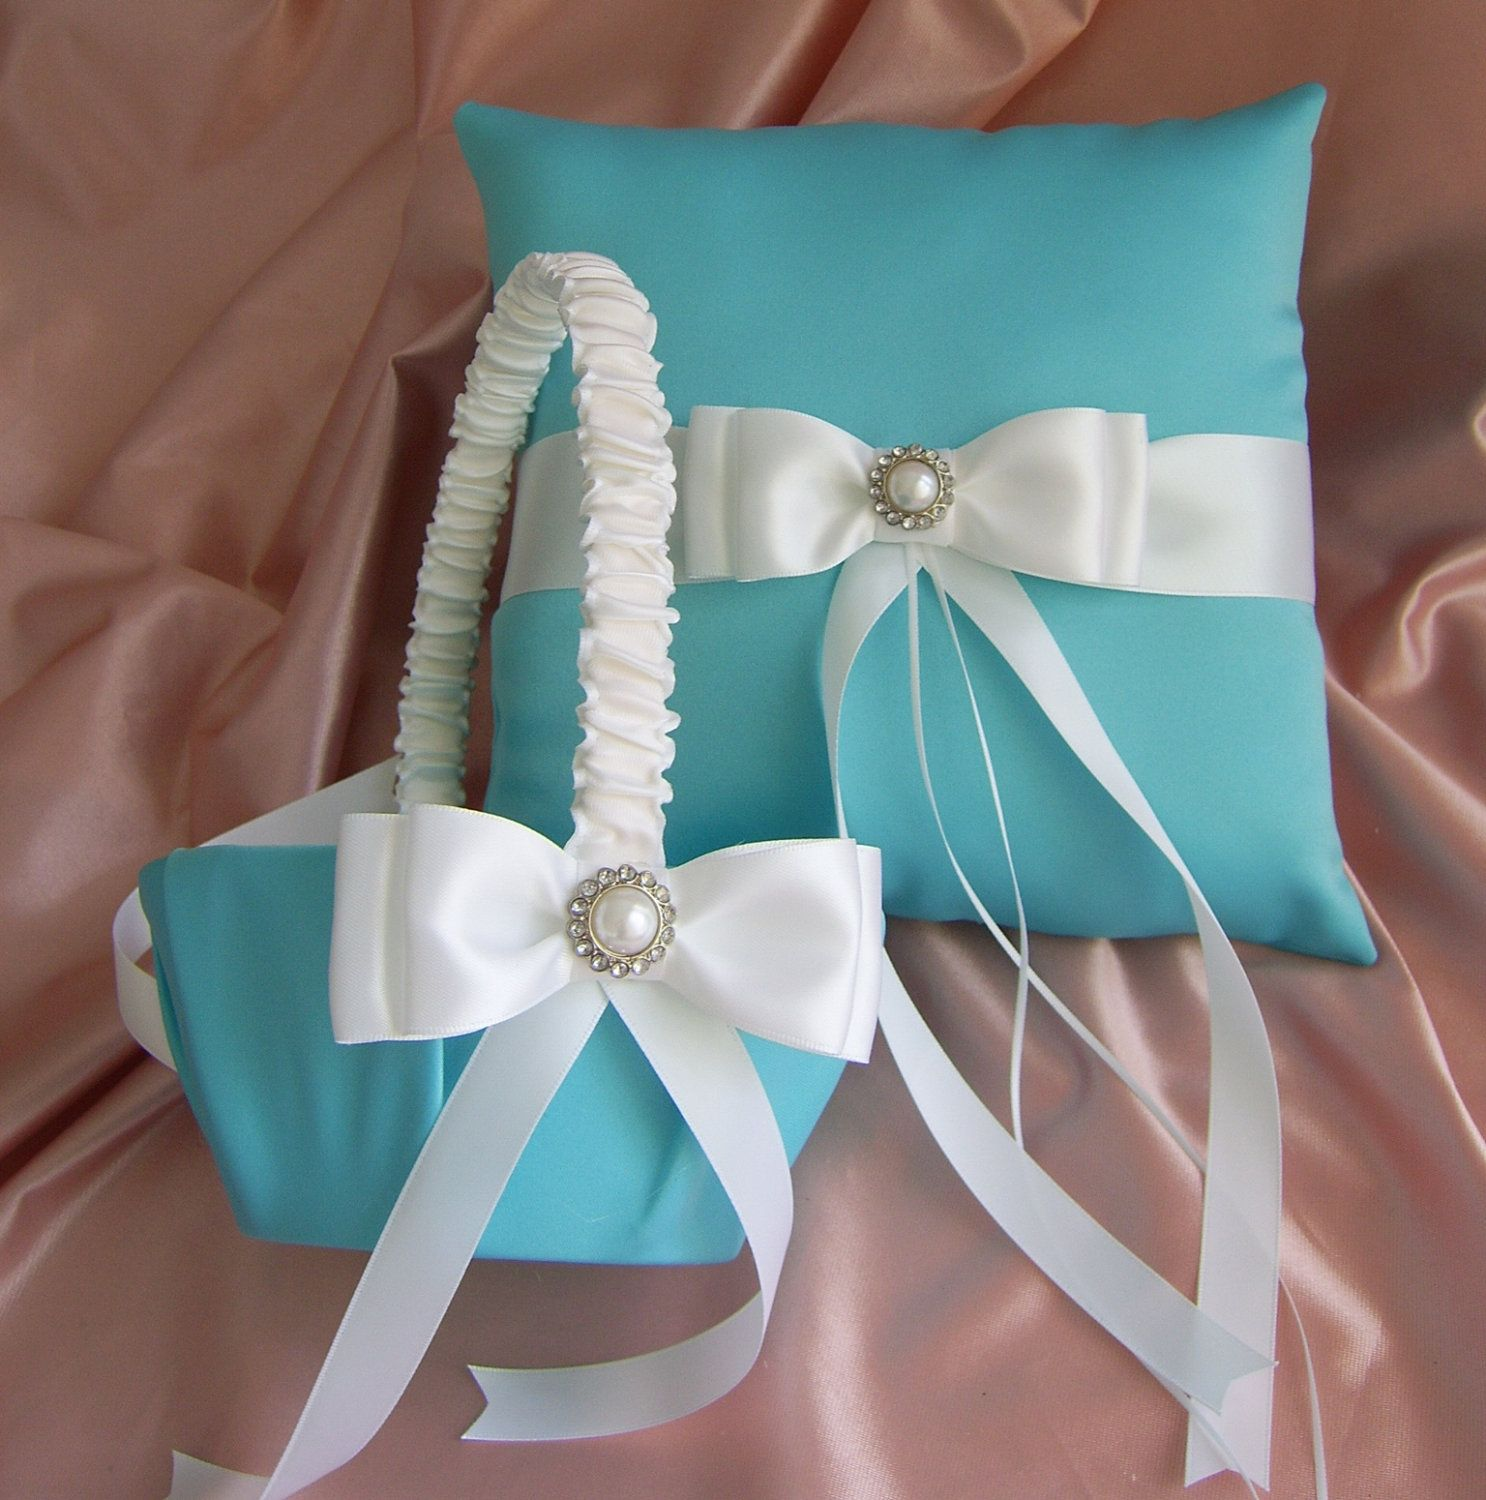 Tiffany blue wedding flower girl basket and ring bearer pillow set tiffany blue wedding flower girl basket and ring bearer pillow set tiffany blue and white izmirmasajfo Images